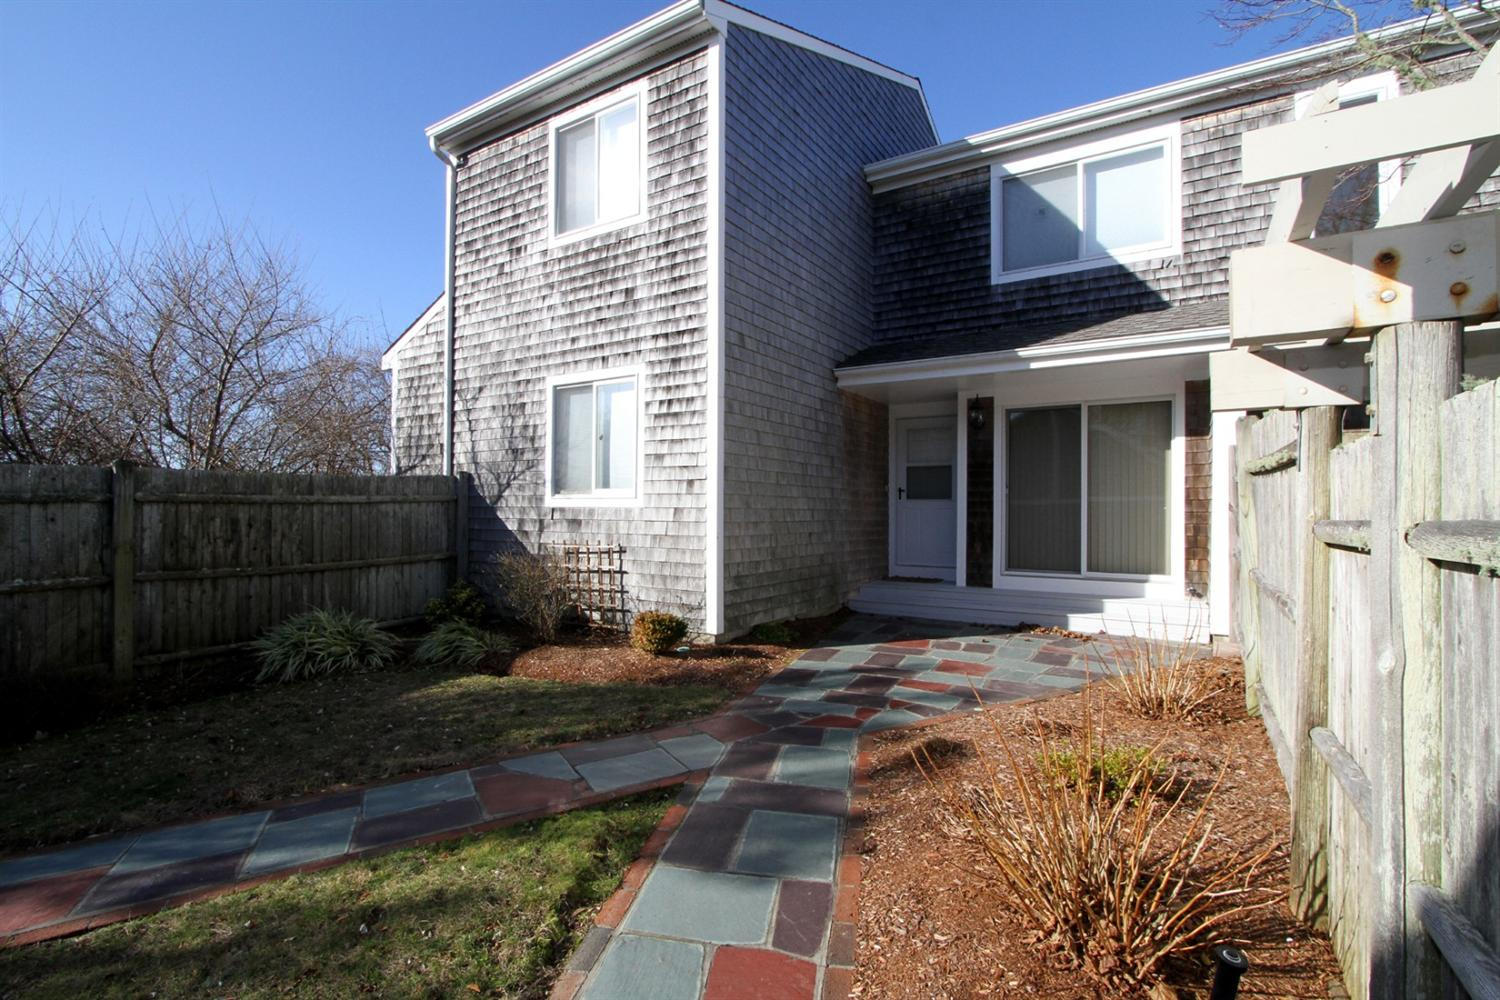 Property For Sale at 1 Belmont Road, #TH1, Harwich, MA